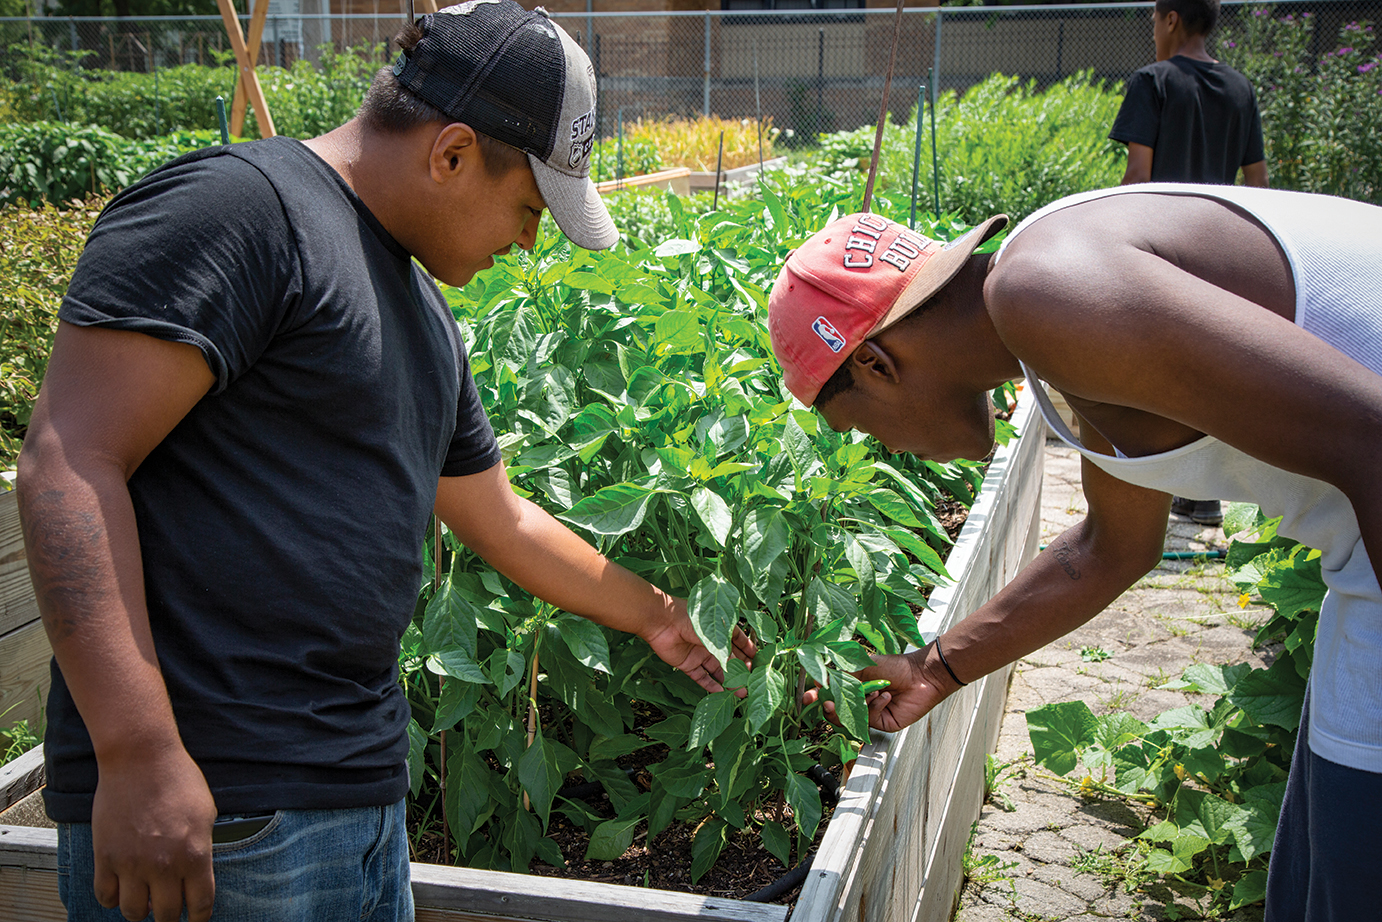 two young men look at pepper plants in an urban, raised-bed garden plot